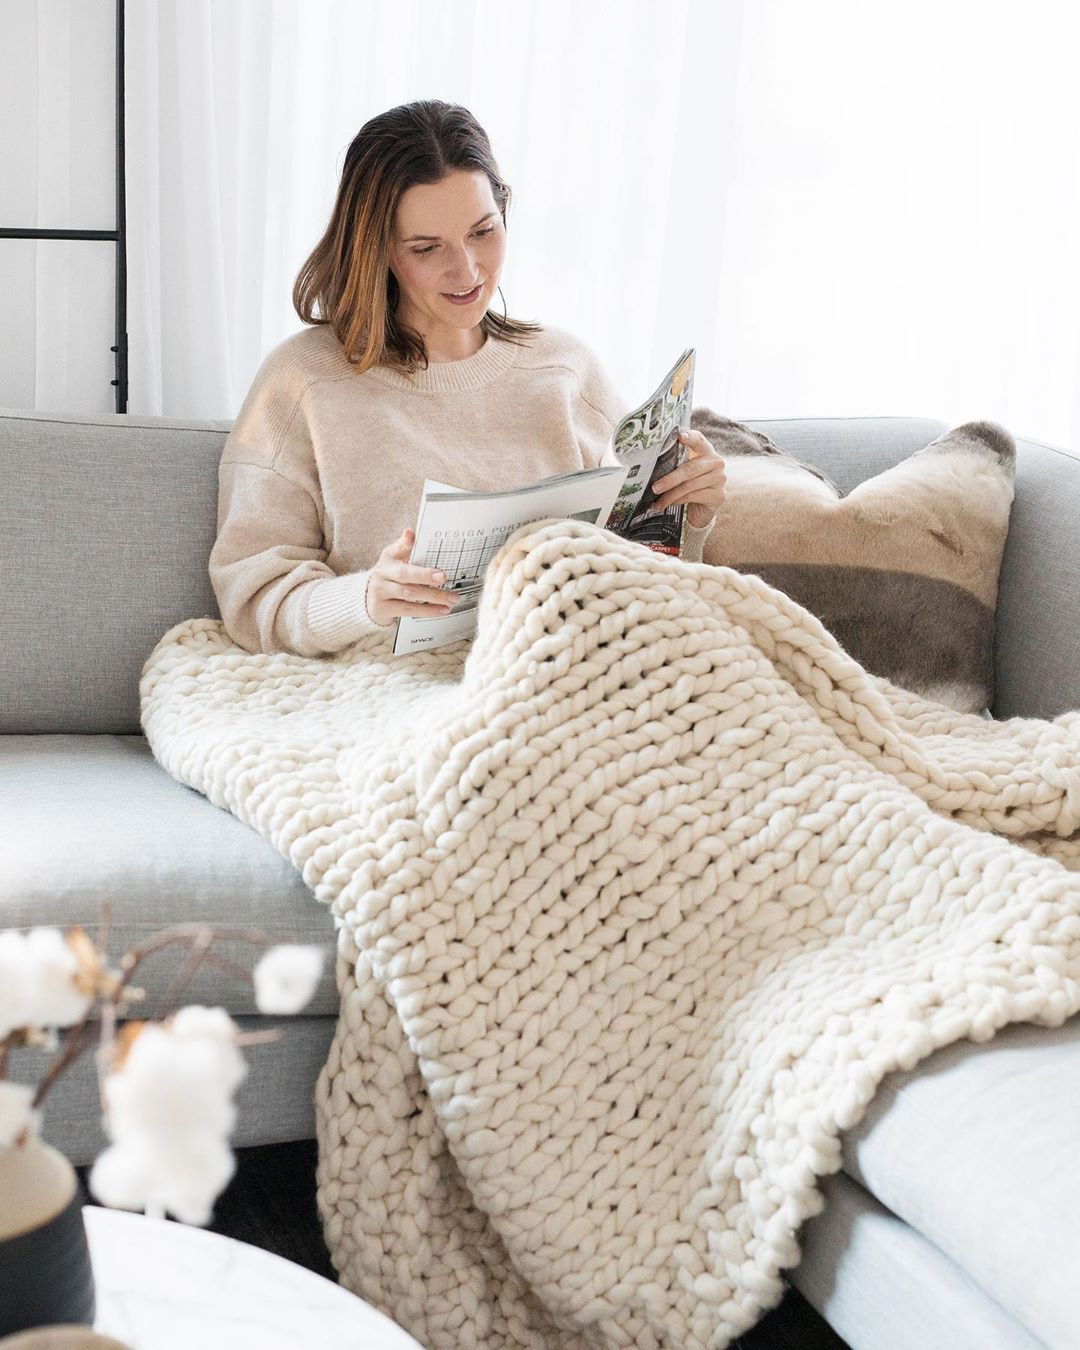 Gina looking cosy and at home. Source:  @stylecuratorau